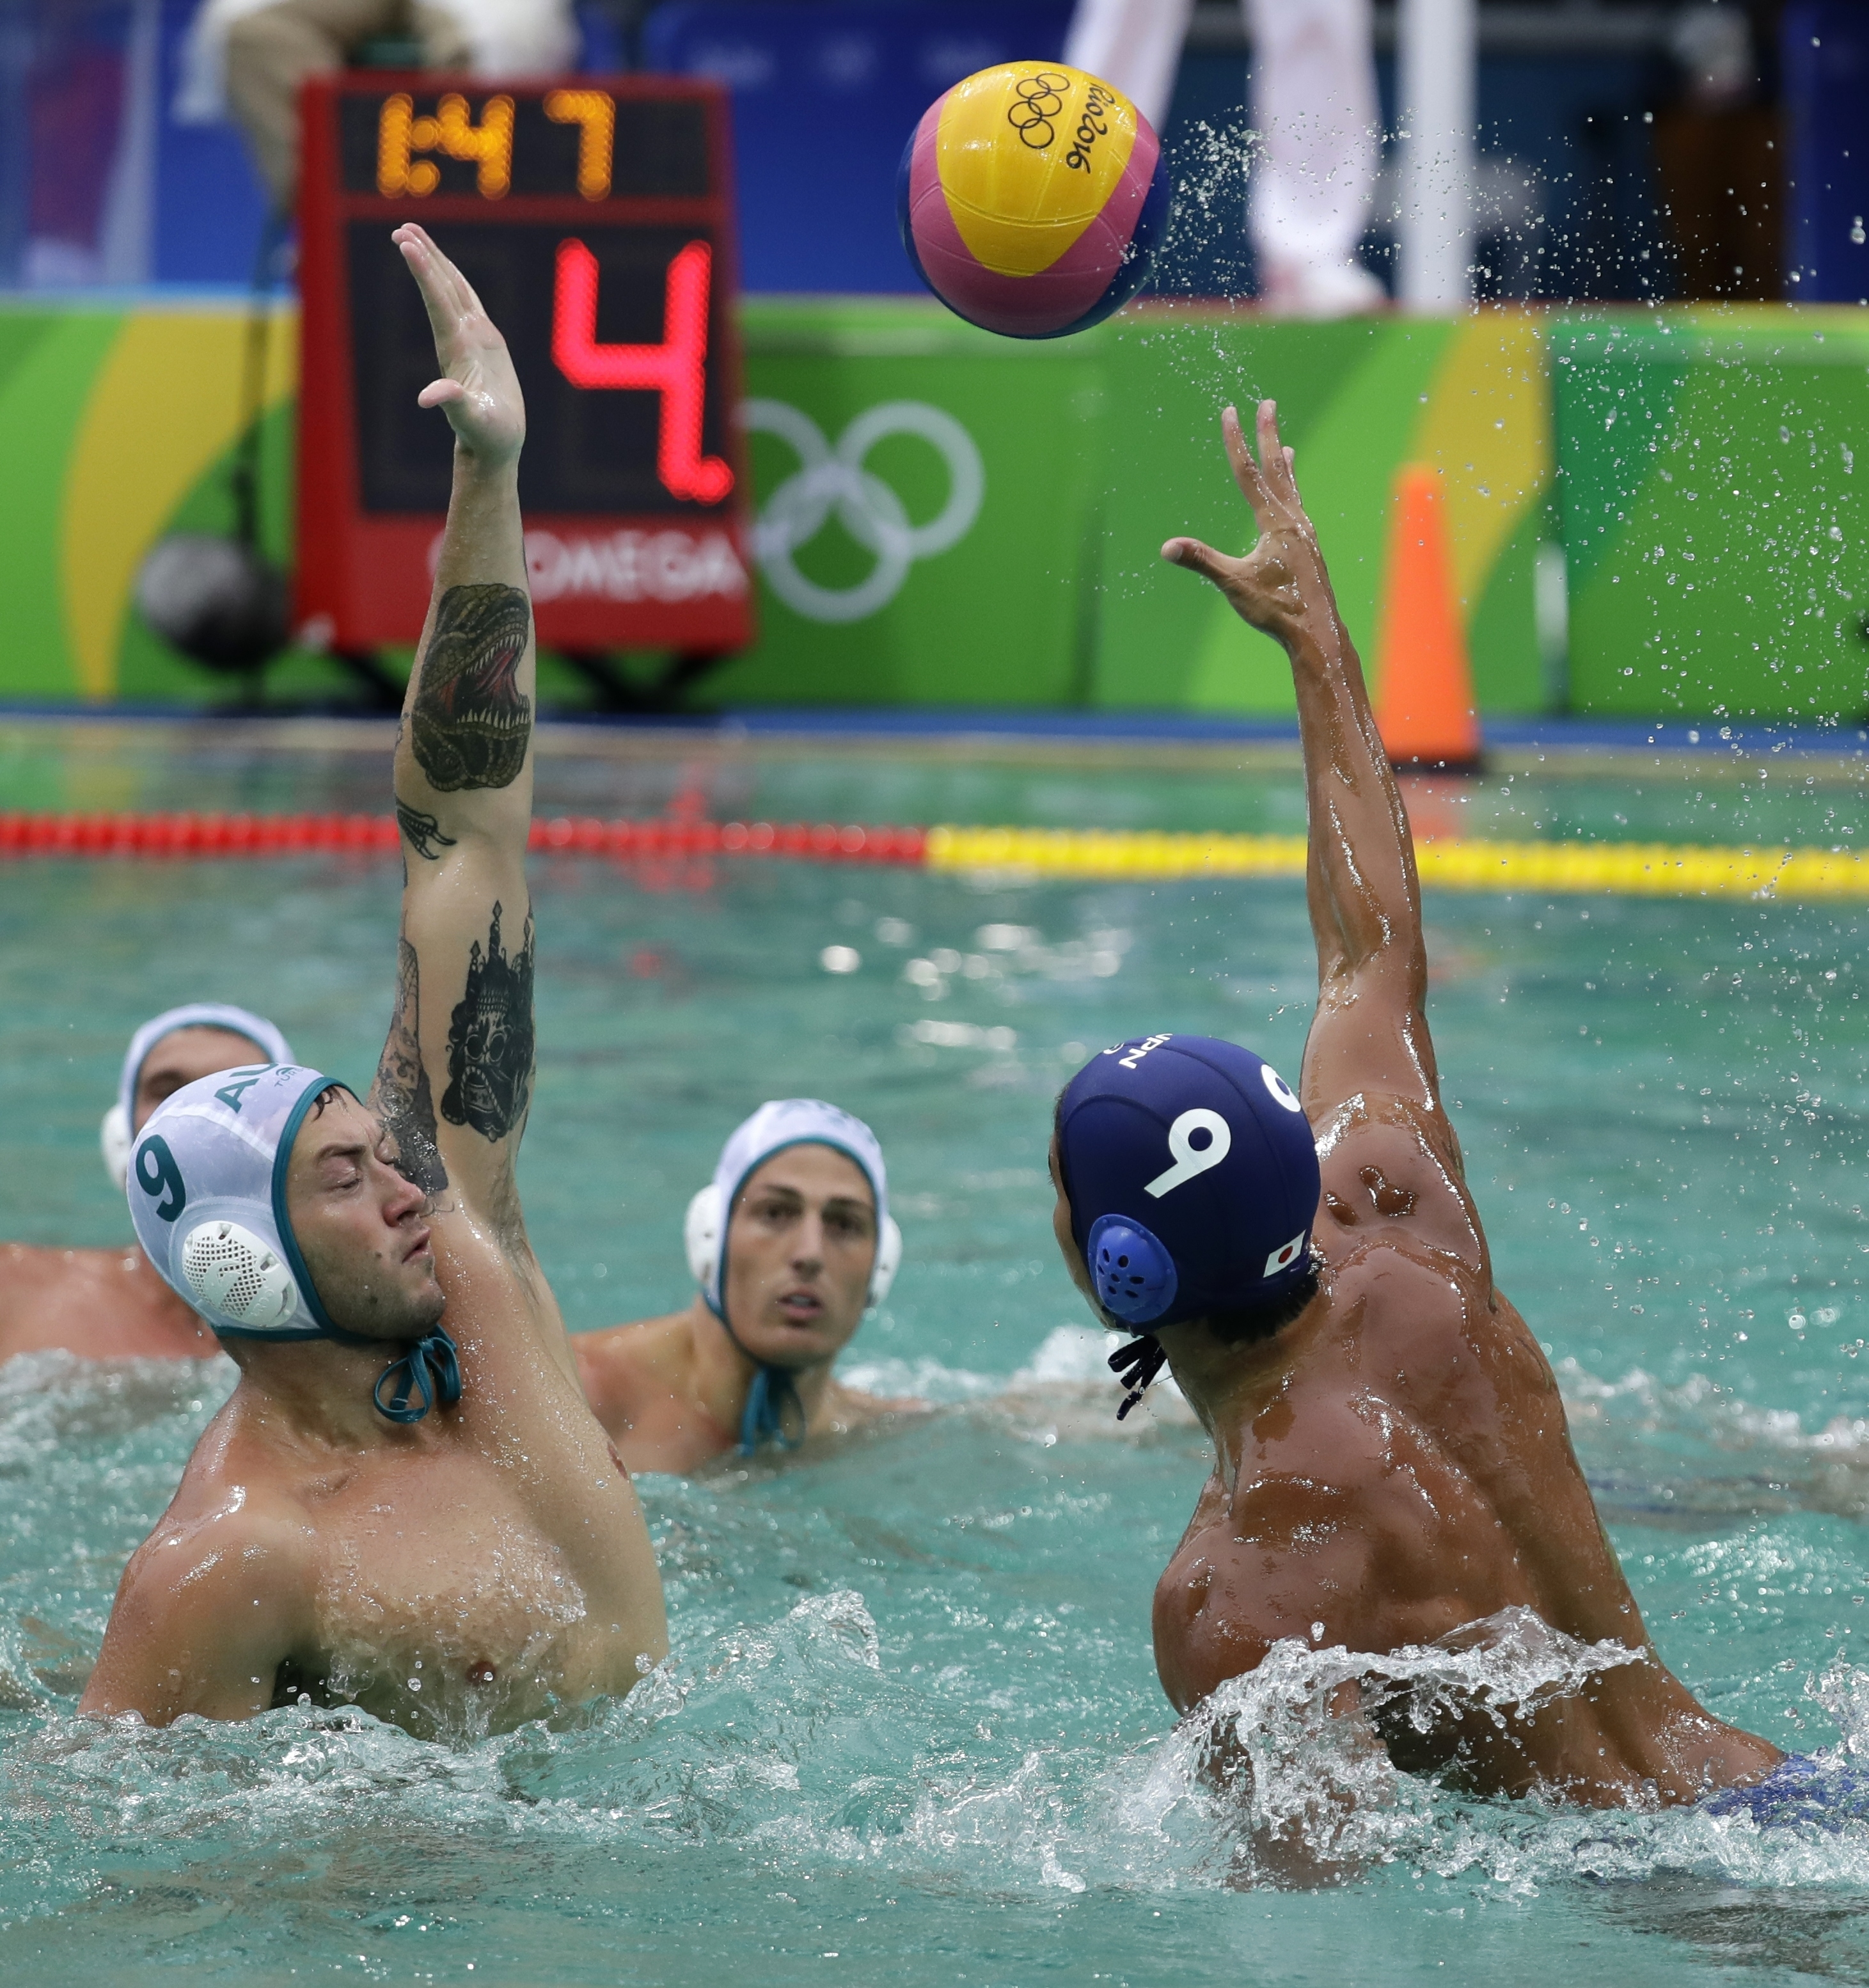 Japan's Koji Take, right, takes a shot as Australia's Joel Swift defends during their men's water polo preliminary round match at the 2016 Summer Olympics in Rio de Janeiro, Brazil, Wednesday, Aug. 10, 2016. (AP Photo/Sergei Grits)